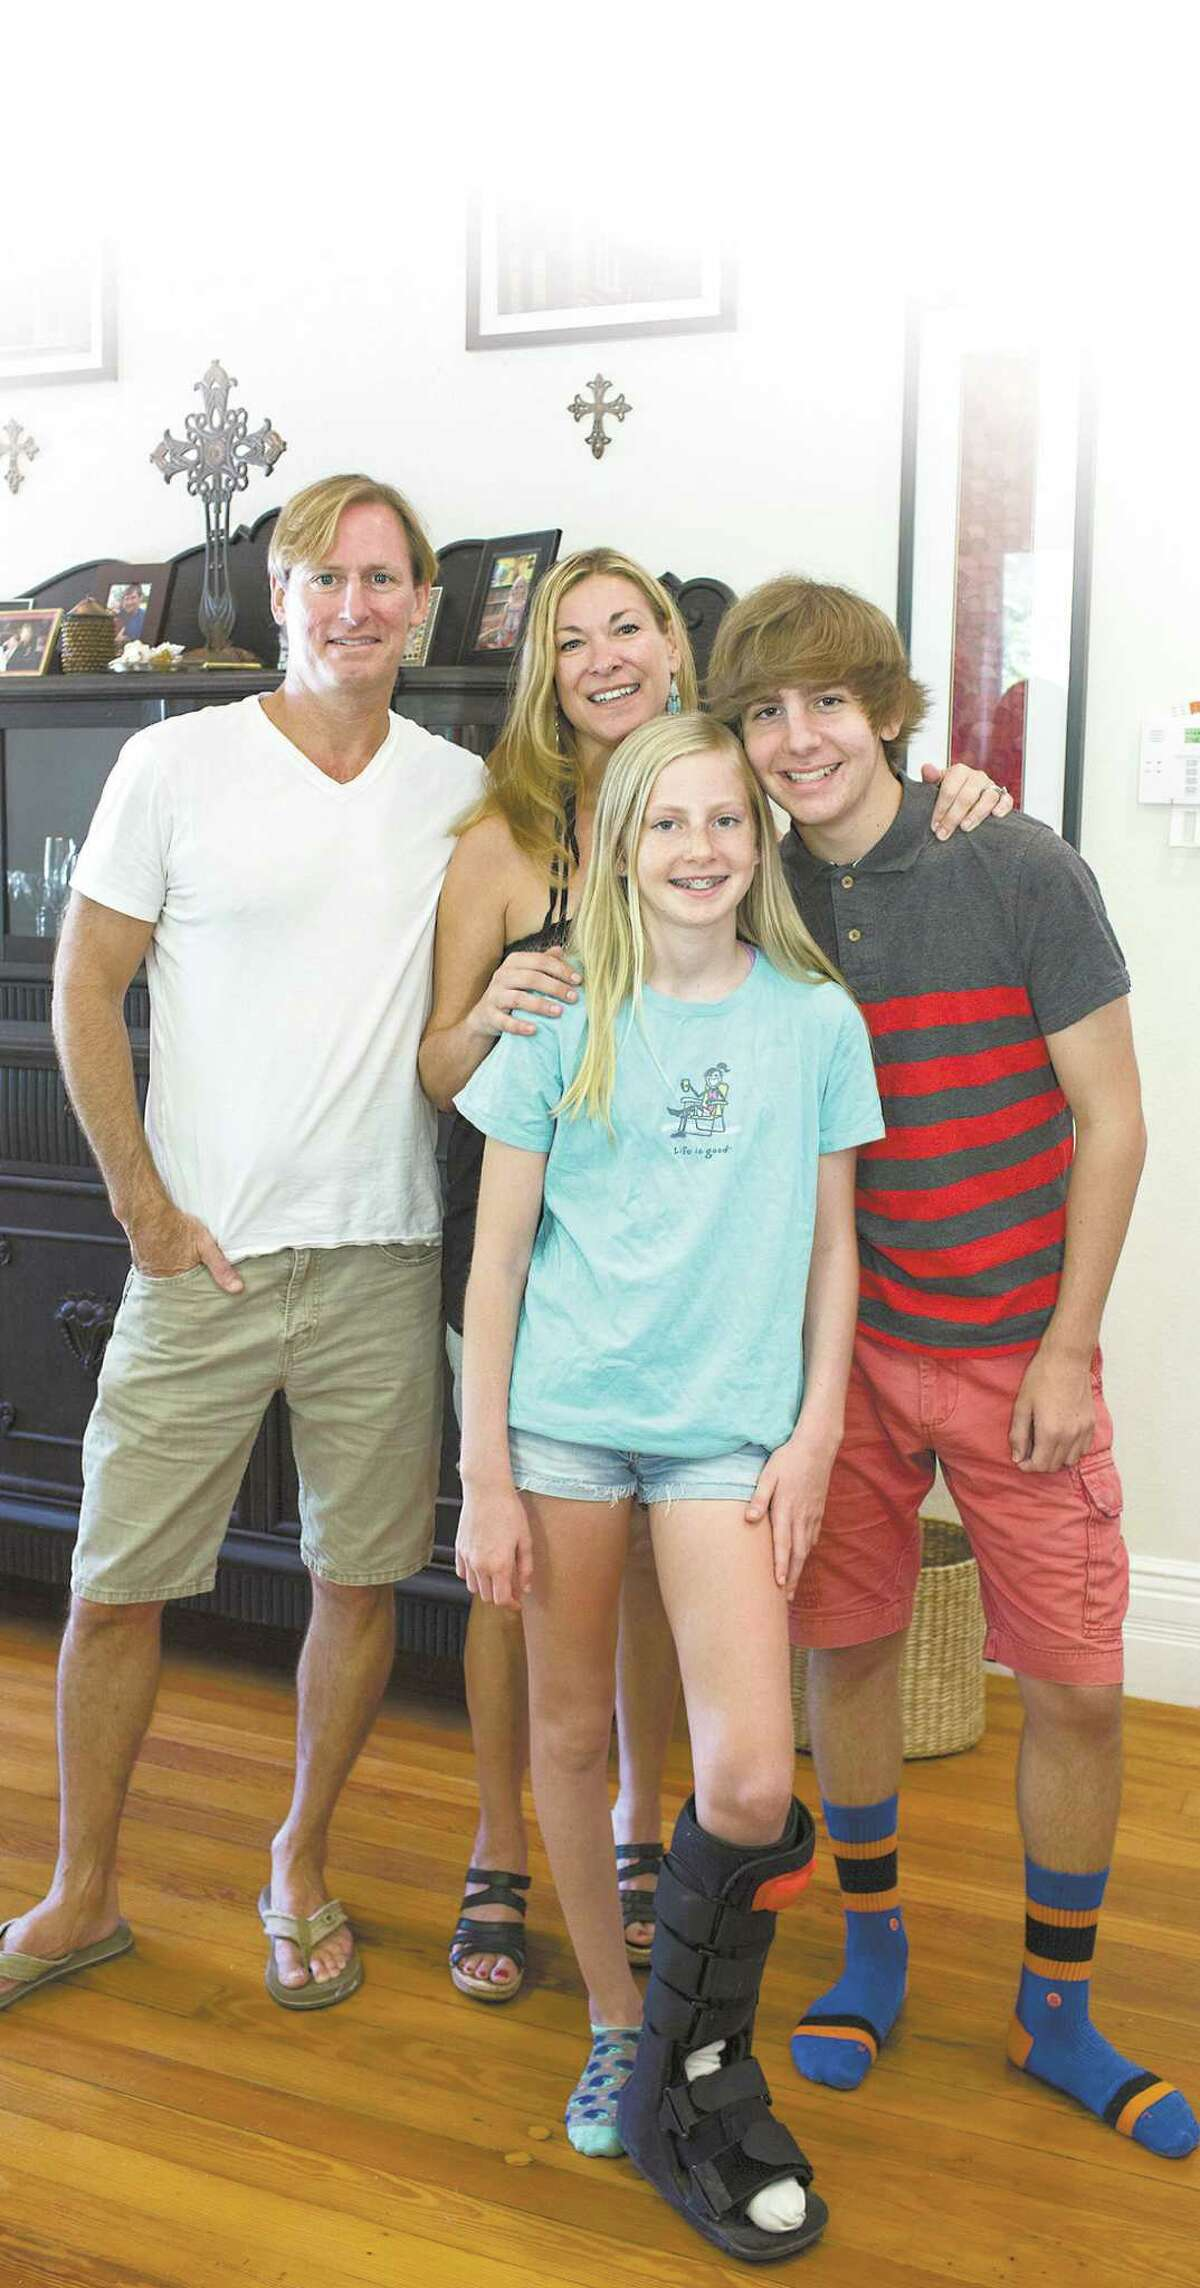 Russell and Margo Prevost with Russell's children, Mariel, 12, and Mason, 15, in their King William home.